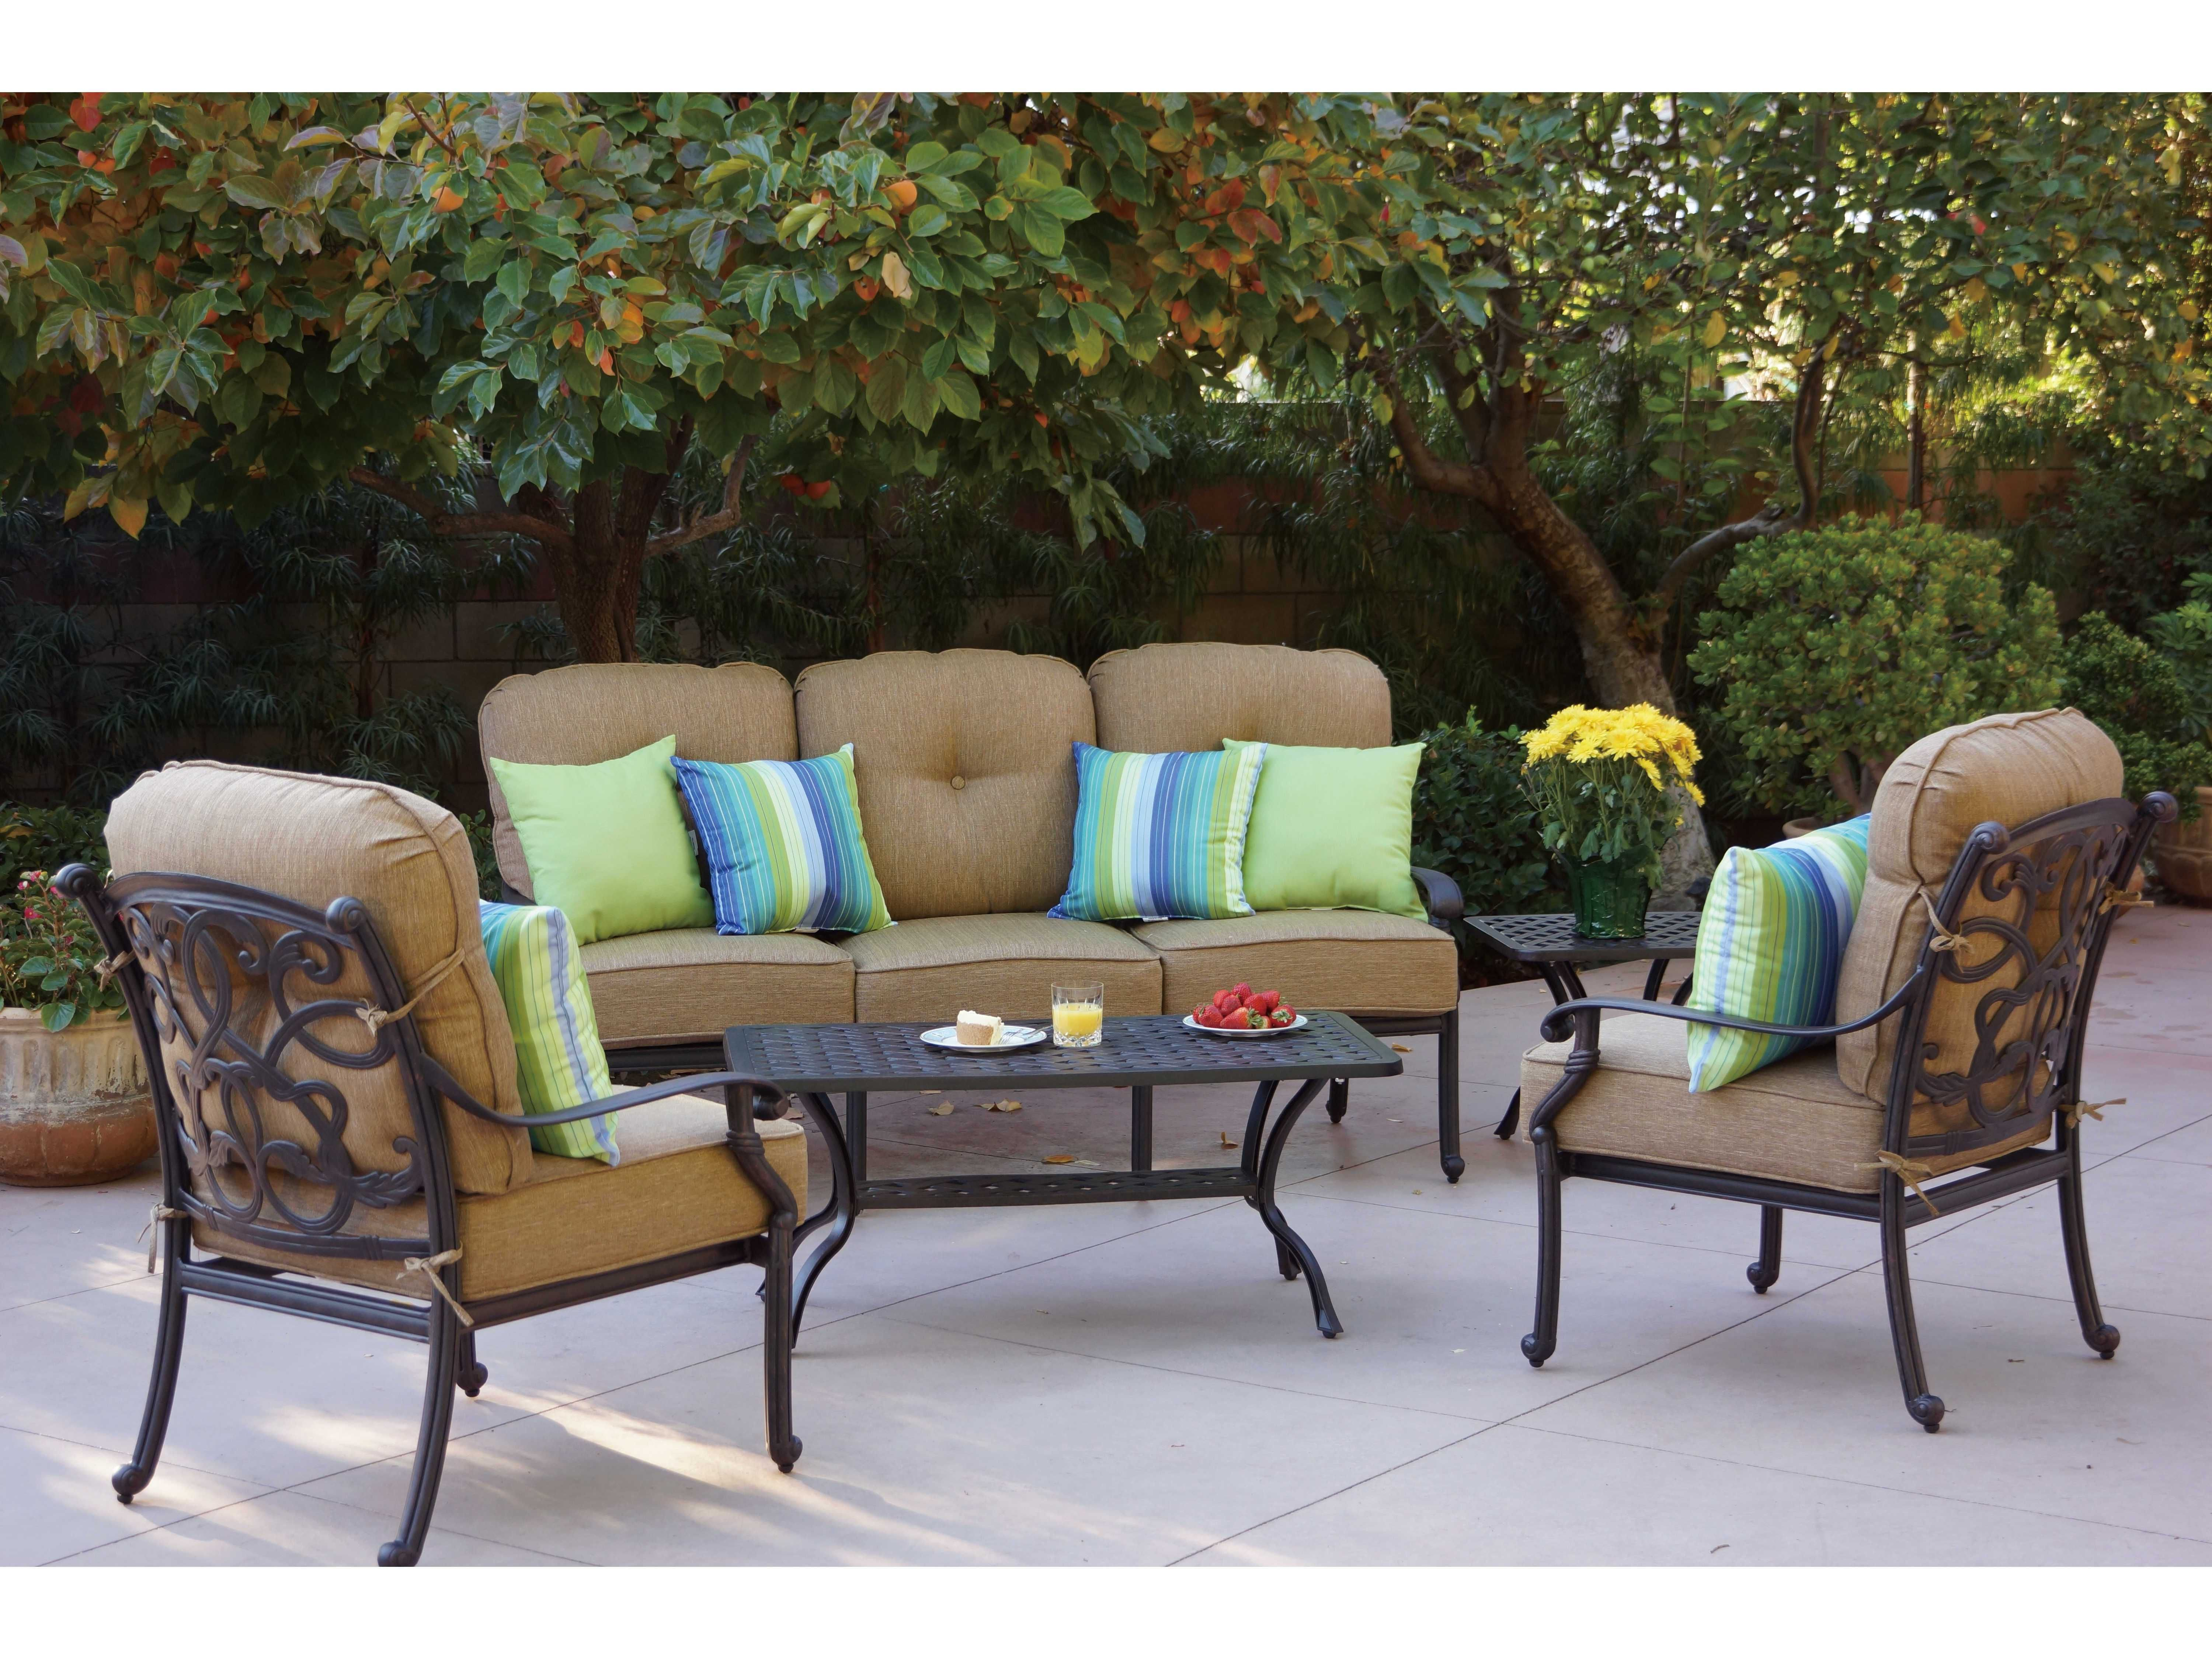 Darlee Outdoor Living Standard Santa Monica Cast Aluminum Lounge Set |  SANTAMONICA SETM